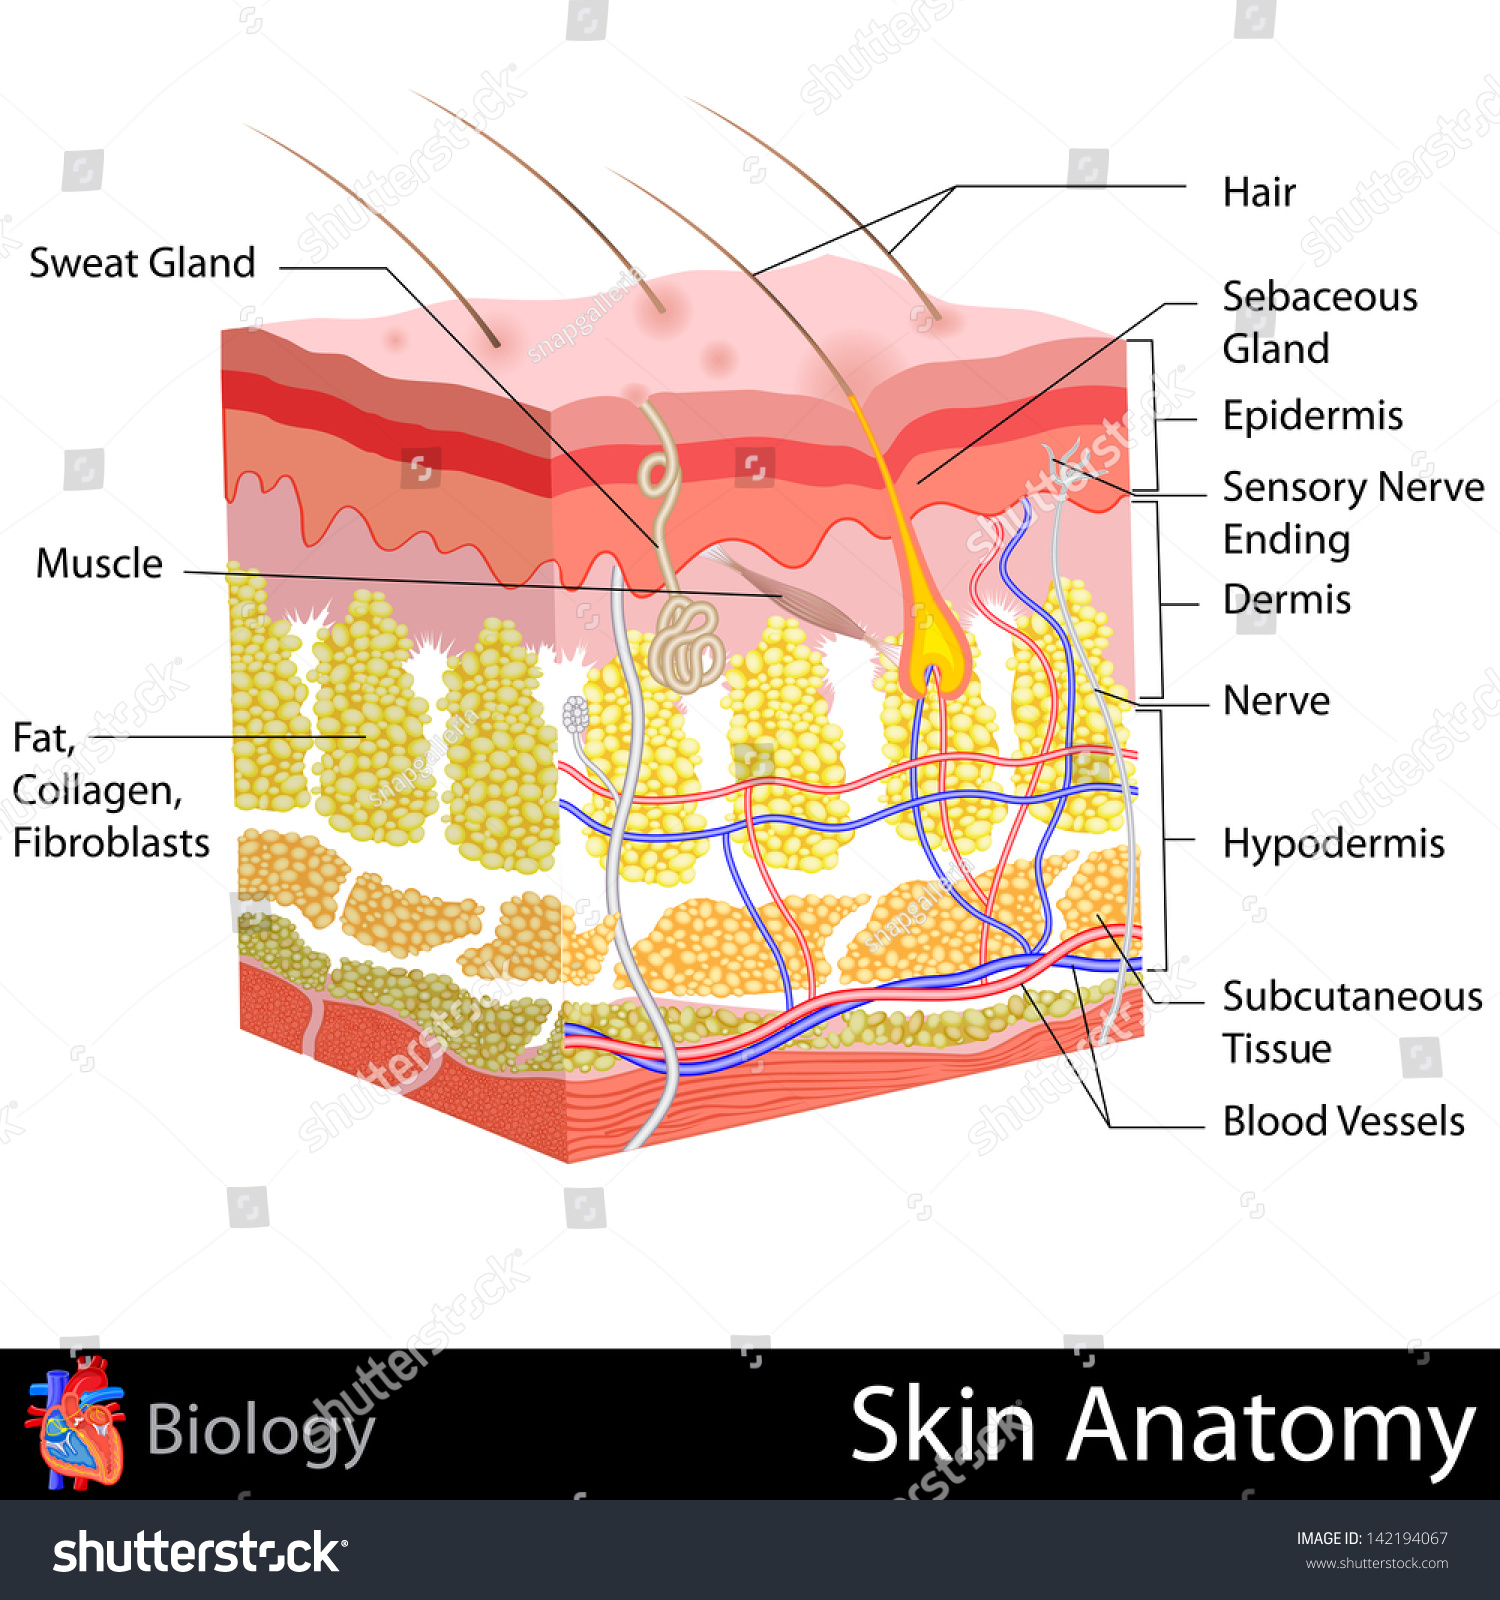 Easy Edit Vector Illustration Skin Anatomy Stock Vector